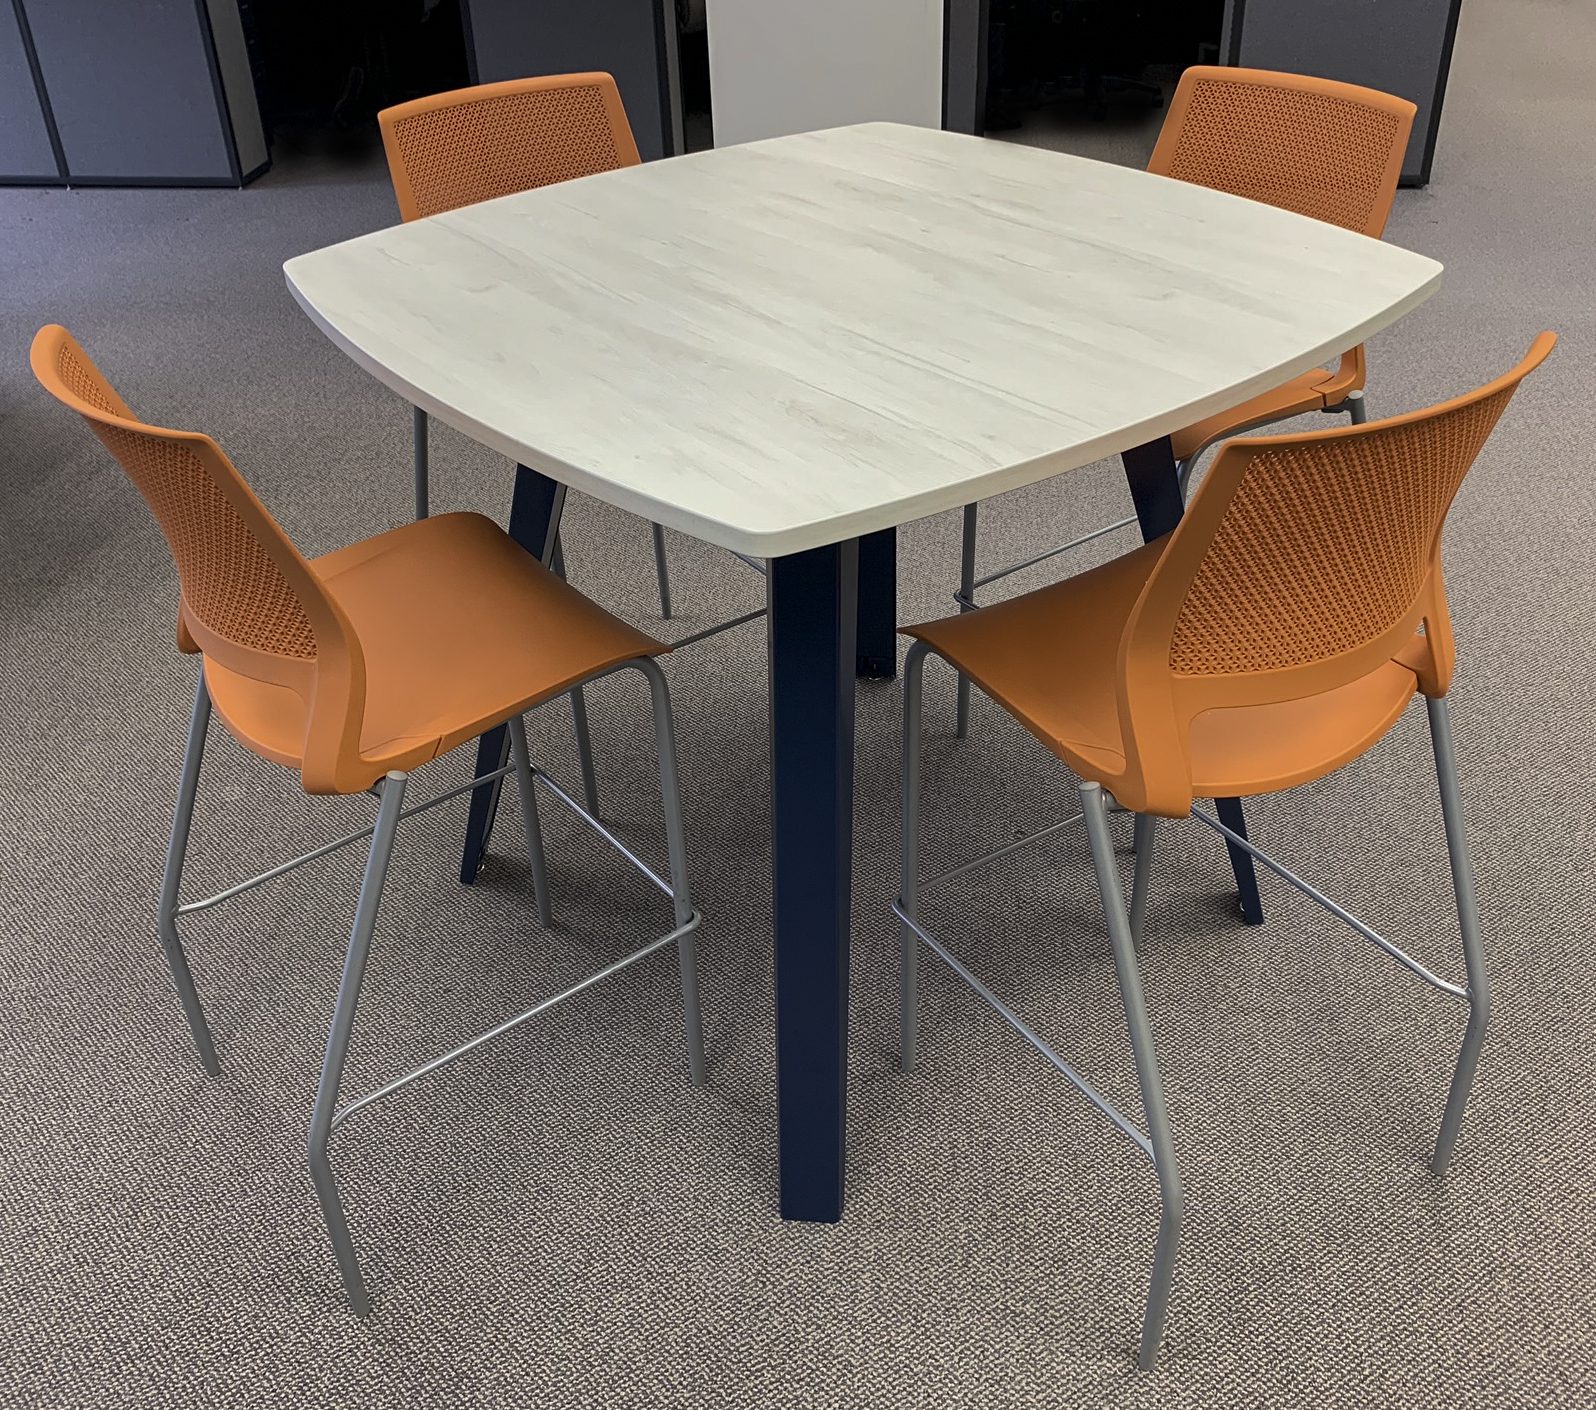 A Tangent Table from Interior Concepts.